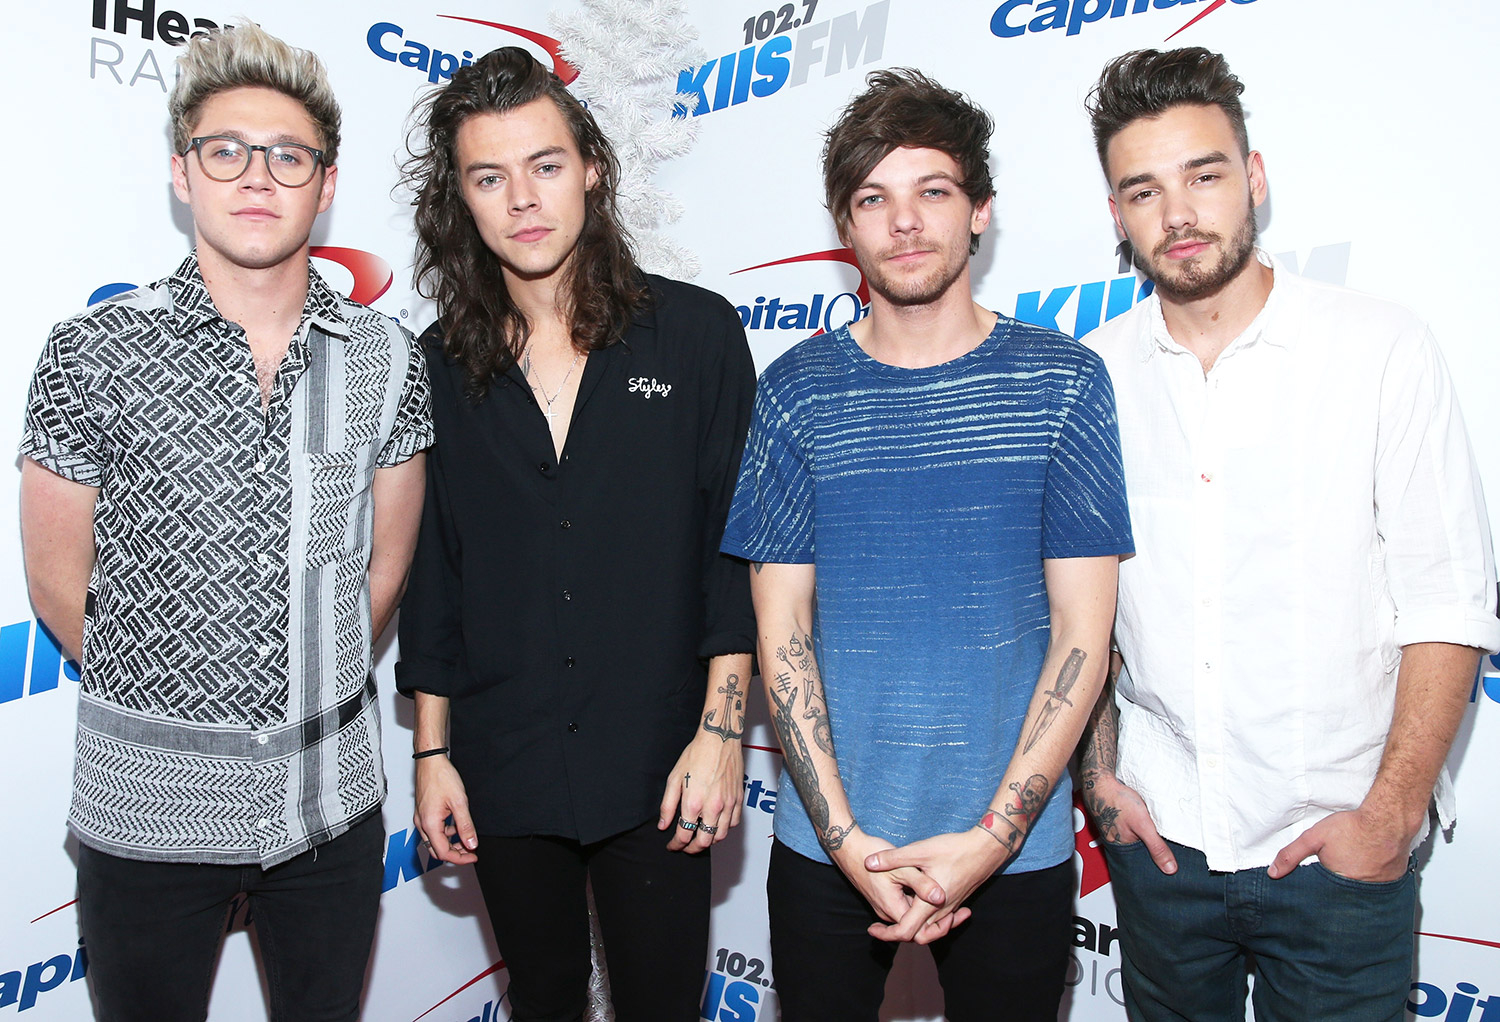 One Direction Detail: Harry Styles Splits From One Direction Management Team